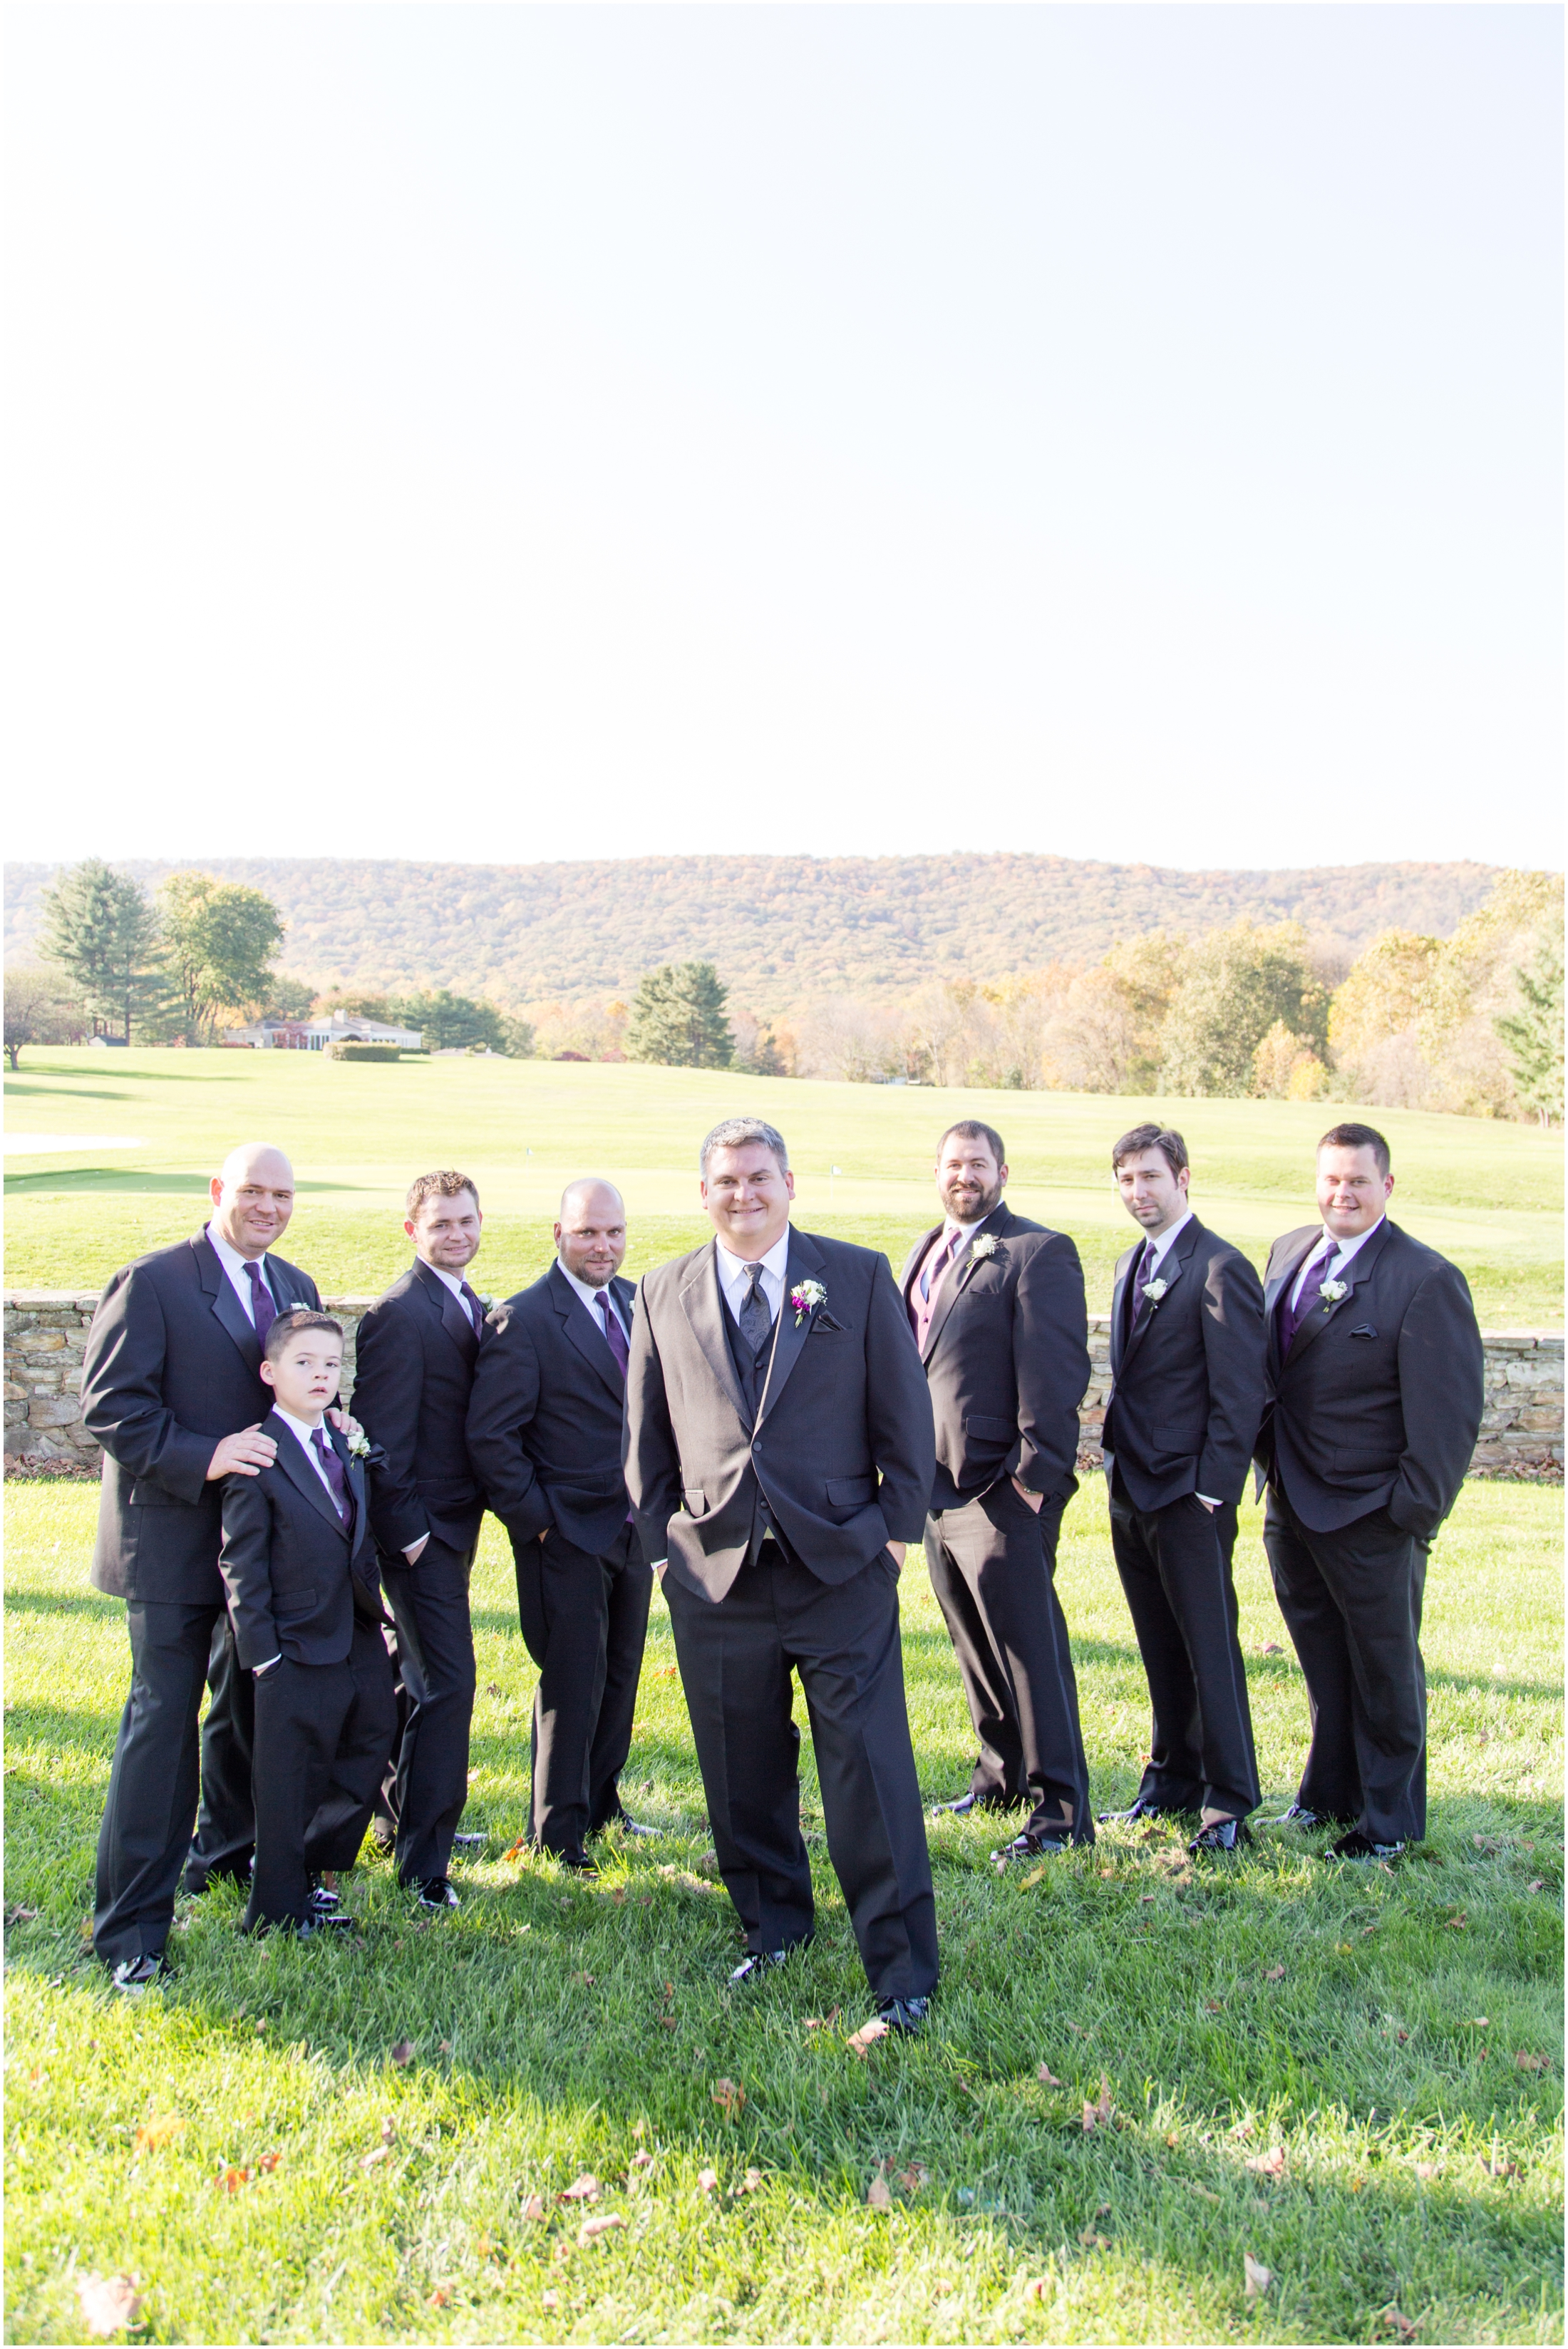 2-Bridal-Party-Worrall-Wedding-400.jpg